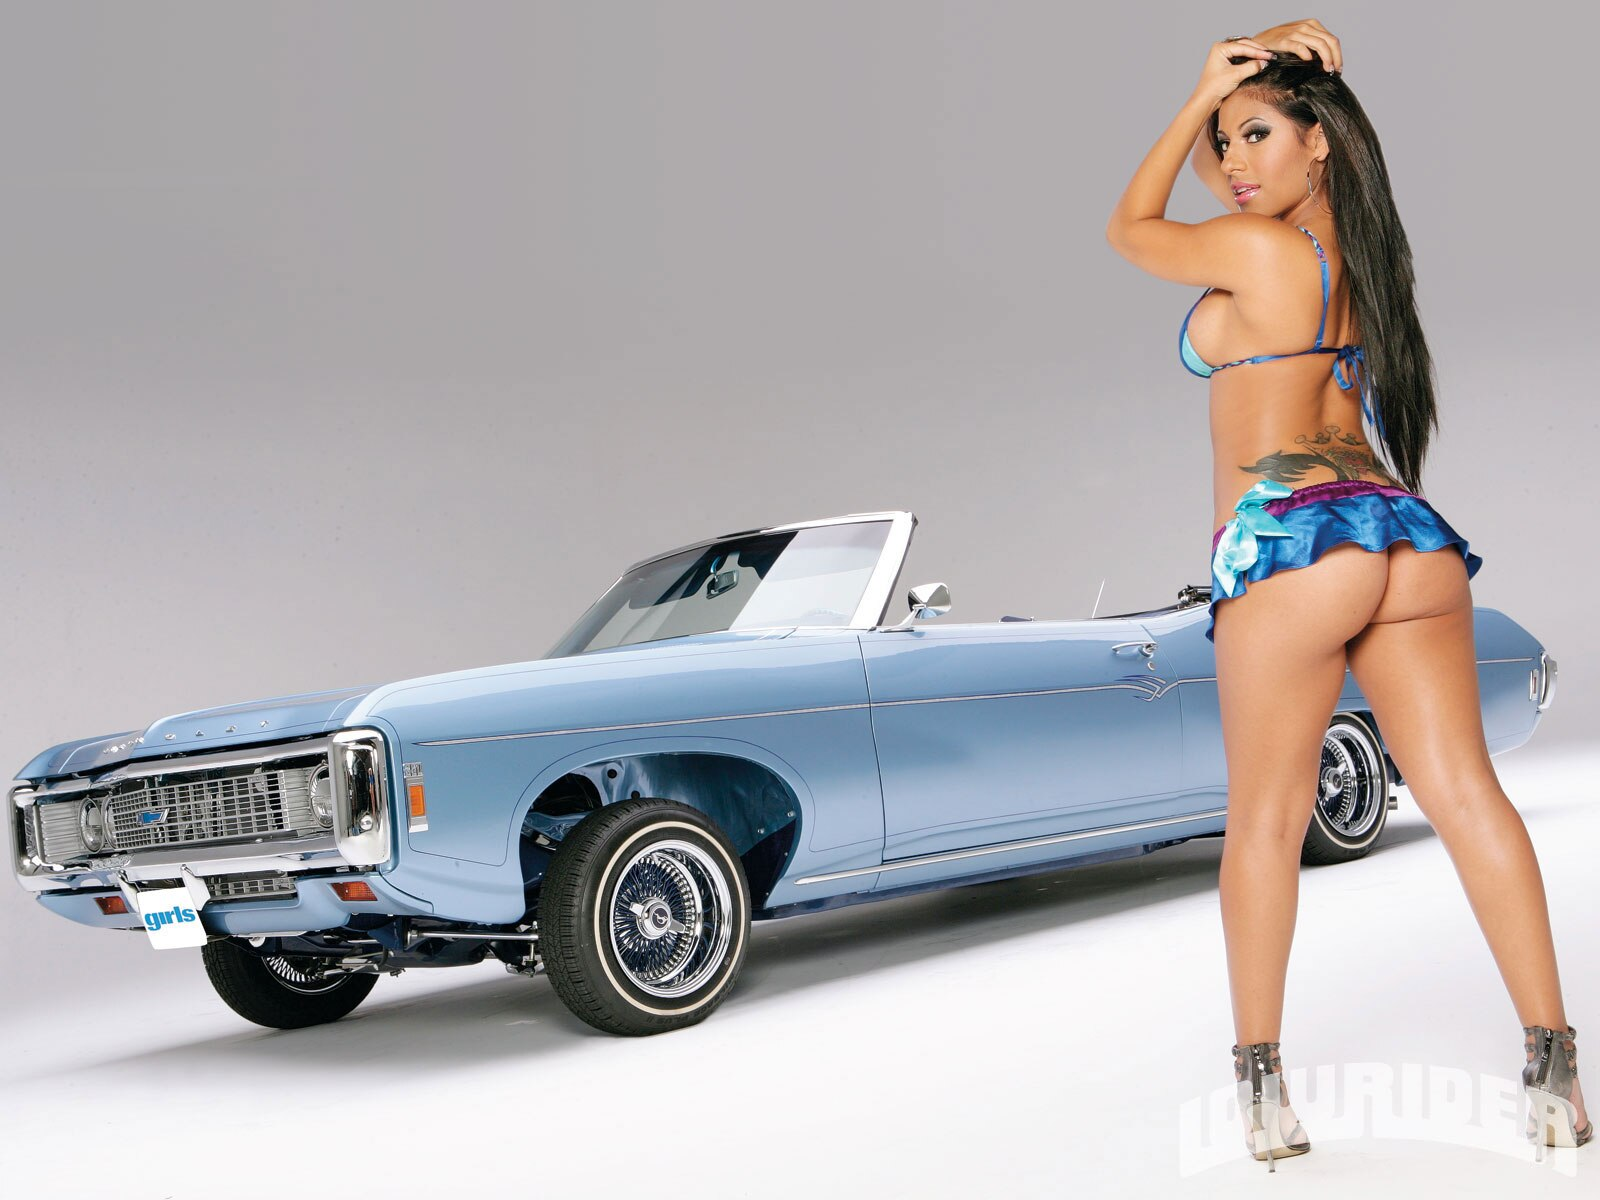 1105-lrms-01-o-maria-millions-lowrider-girls-model-2